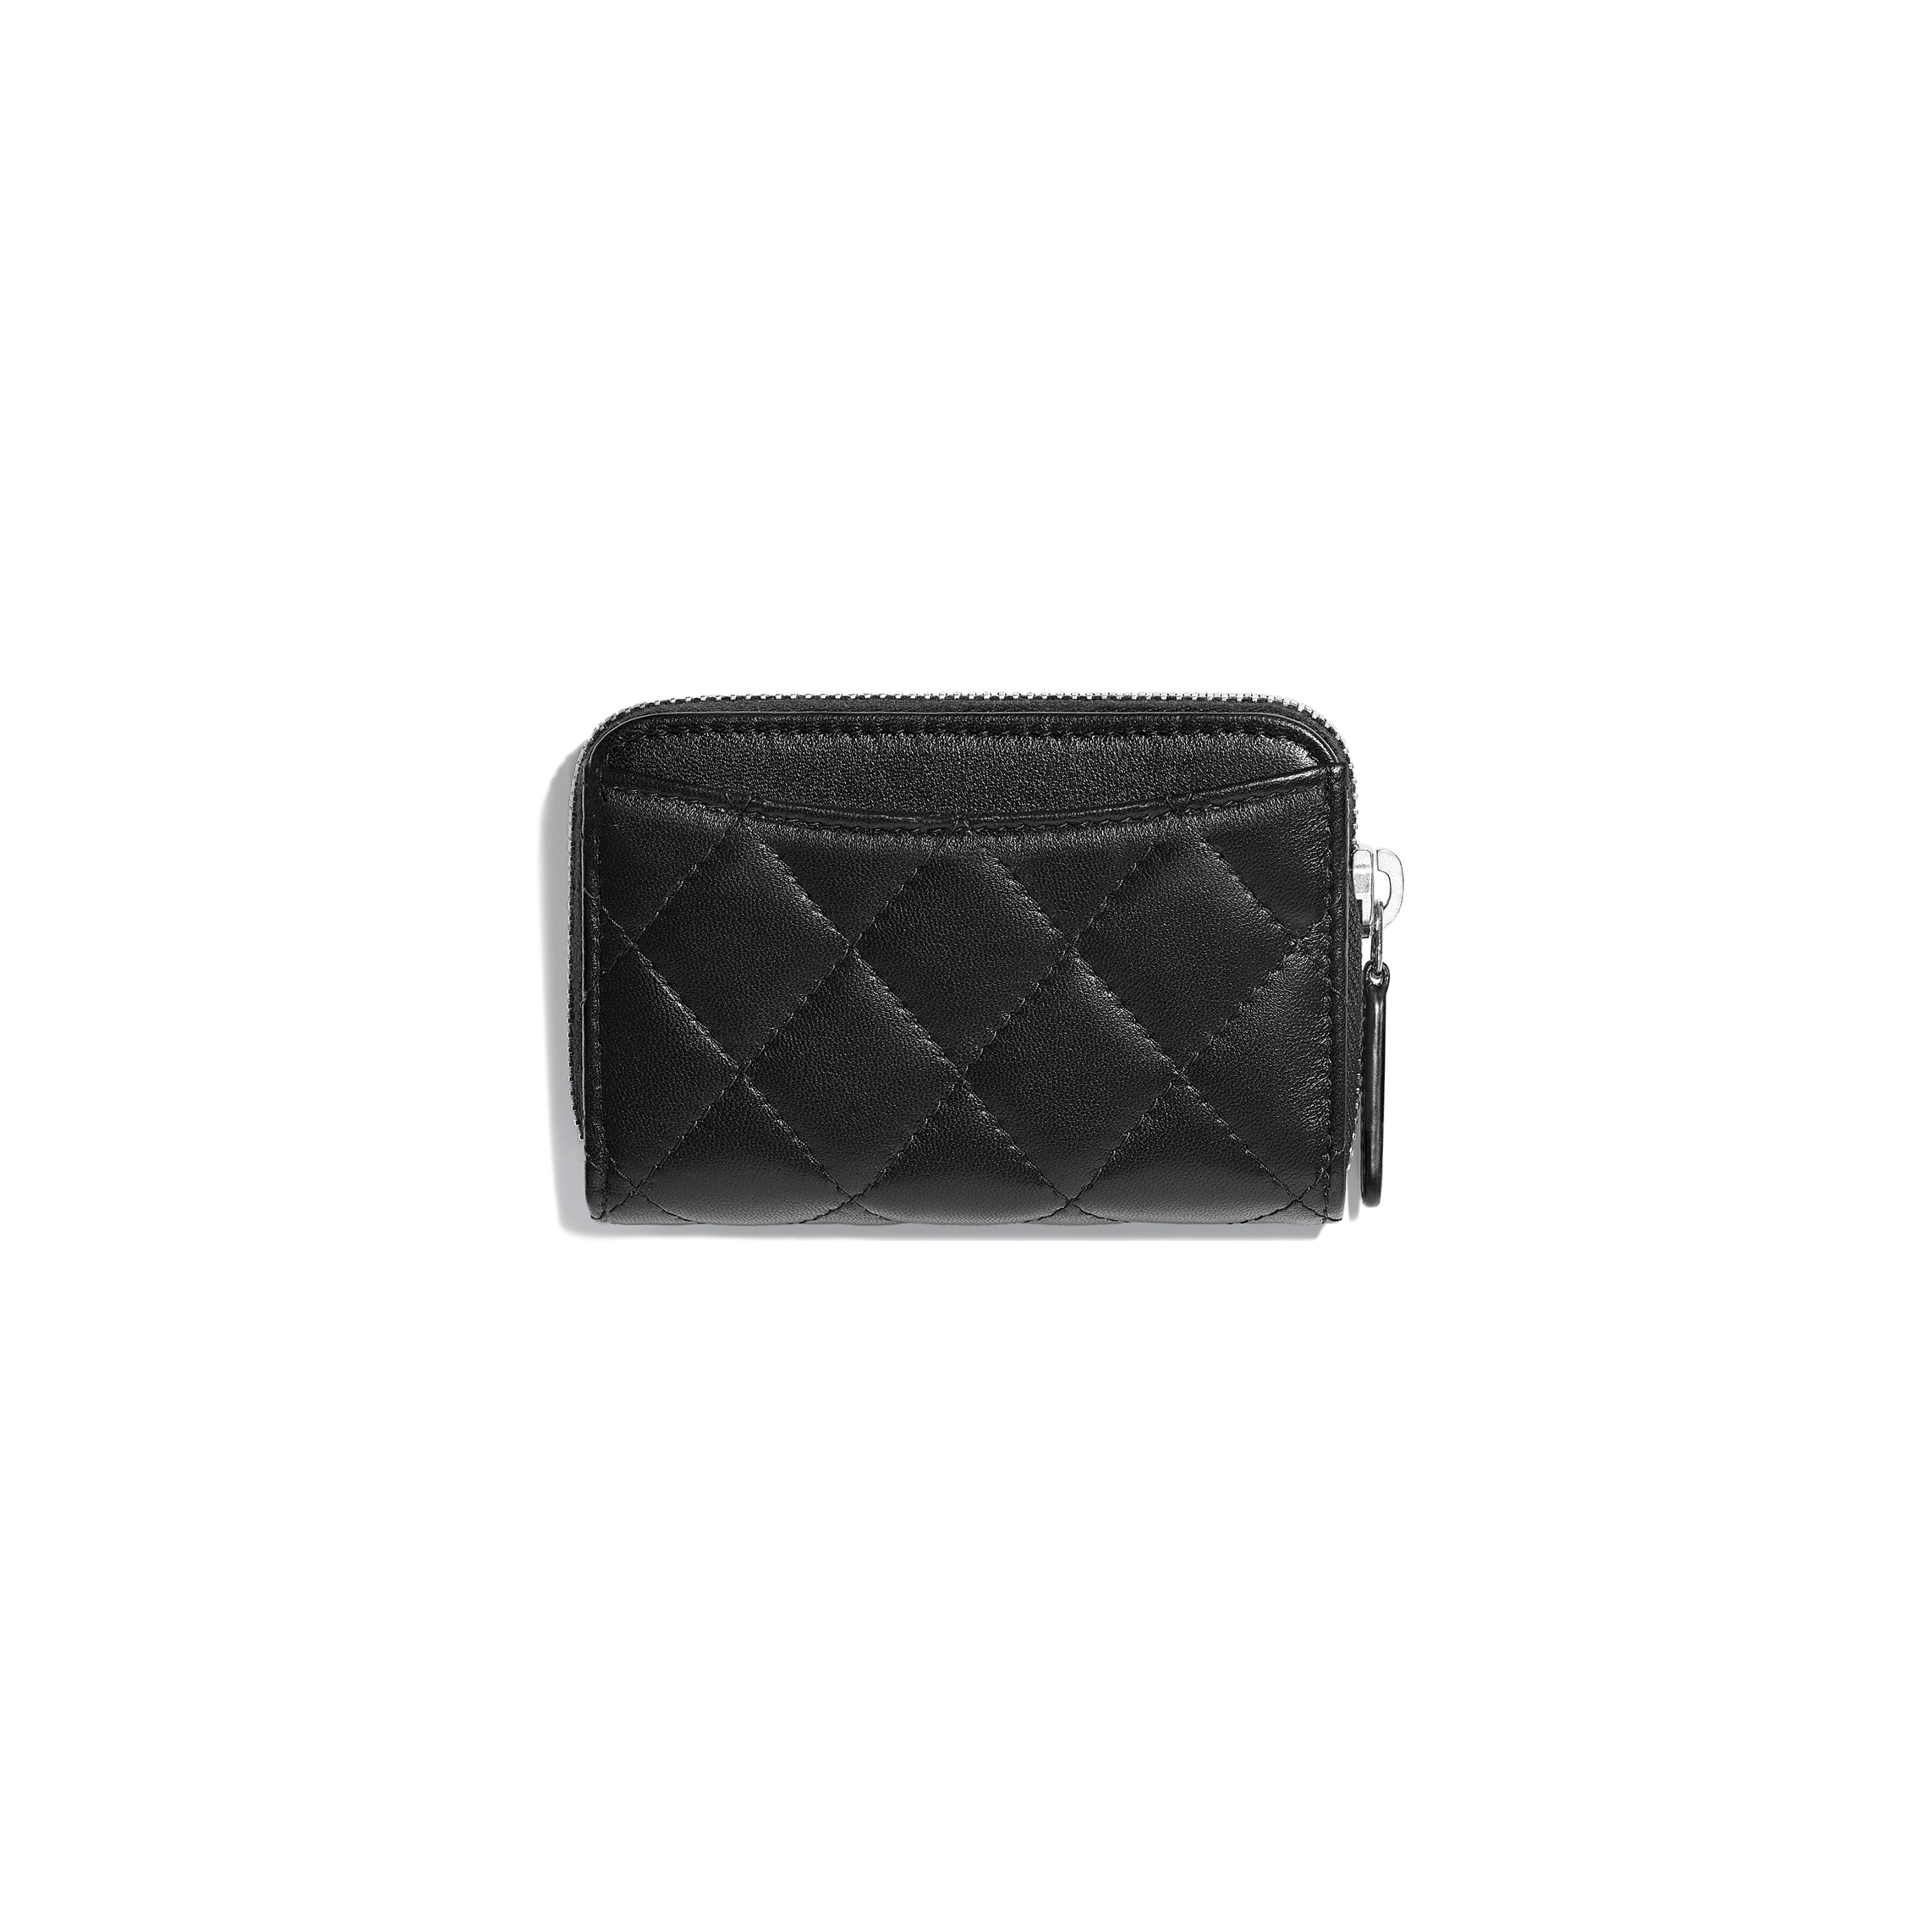 Classic Zipped Card Holder - Black - Lambskin - Alternative view - see full sized version